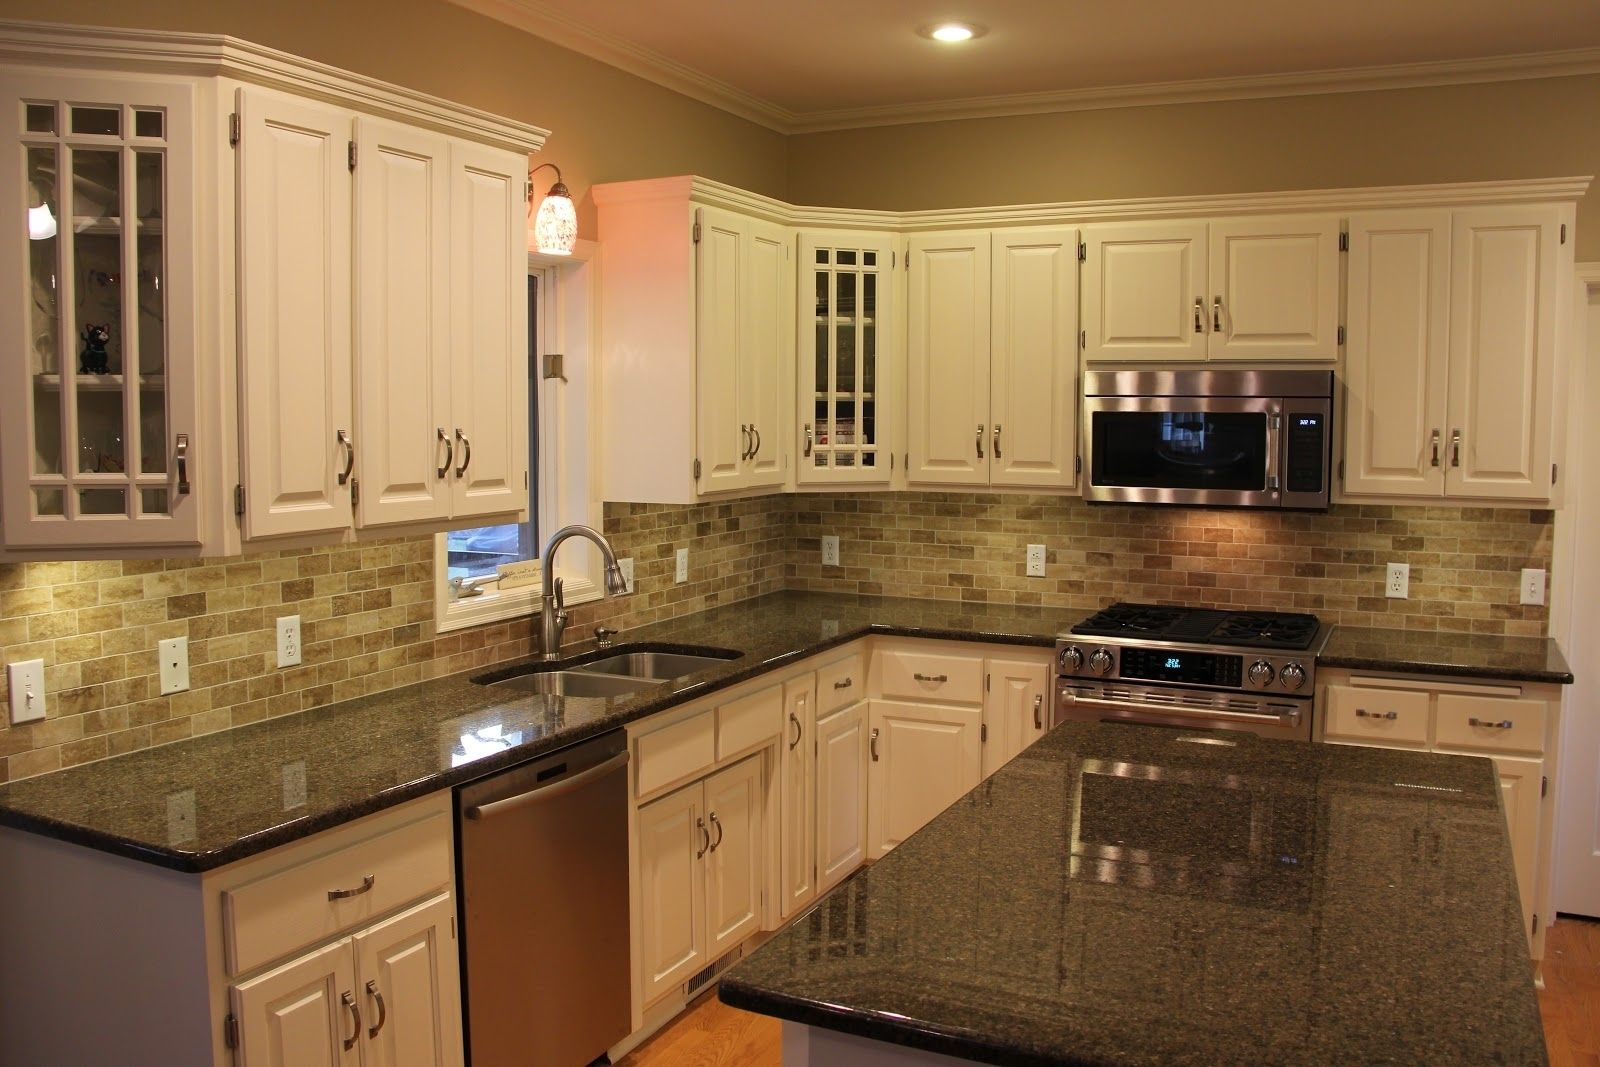 Color Slate This Kitchen Backsplash And Photos Uba Tuba